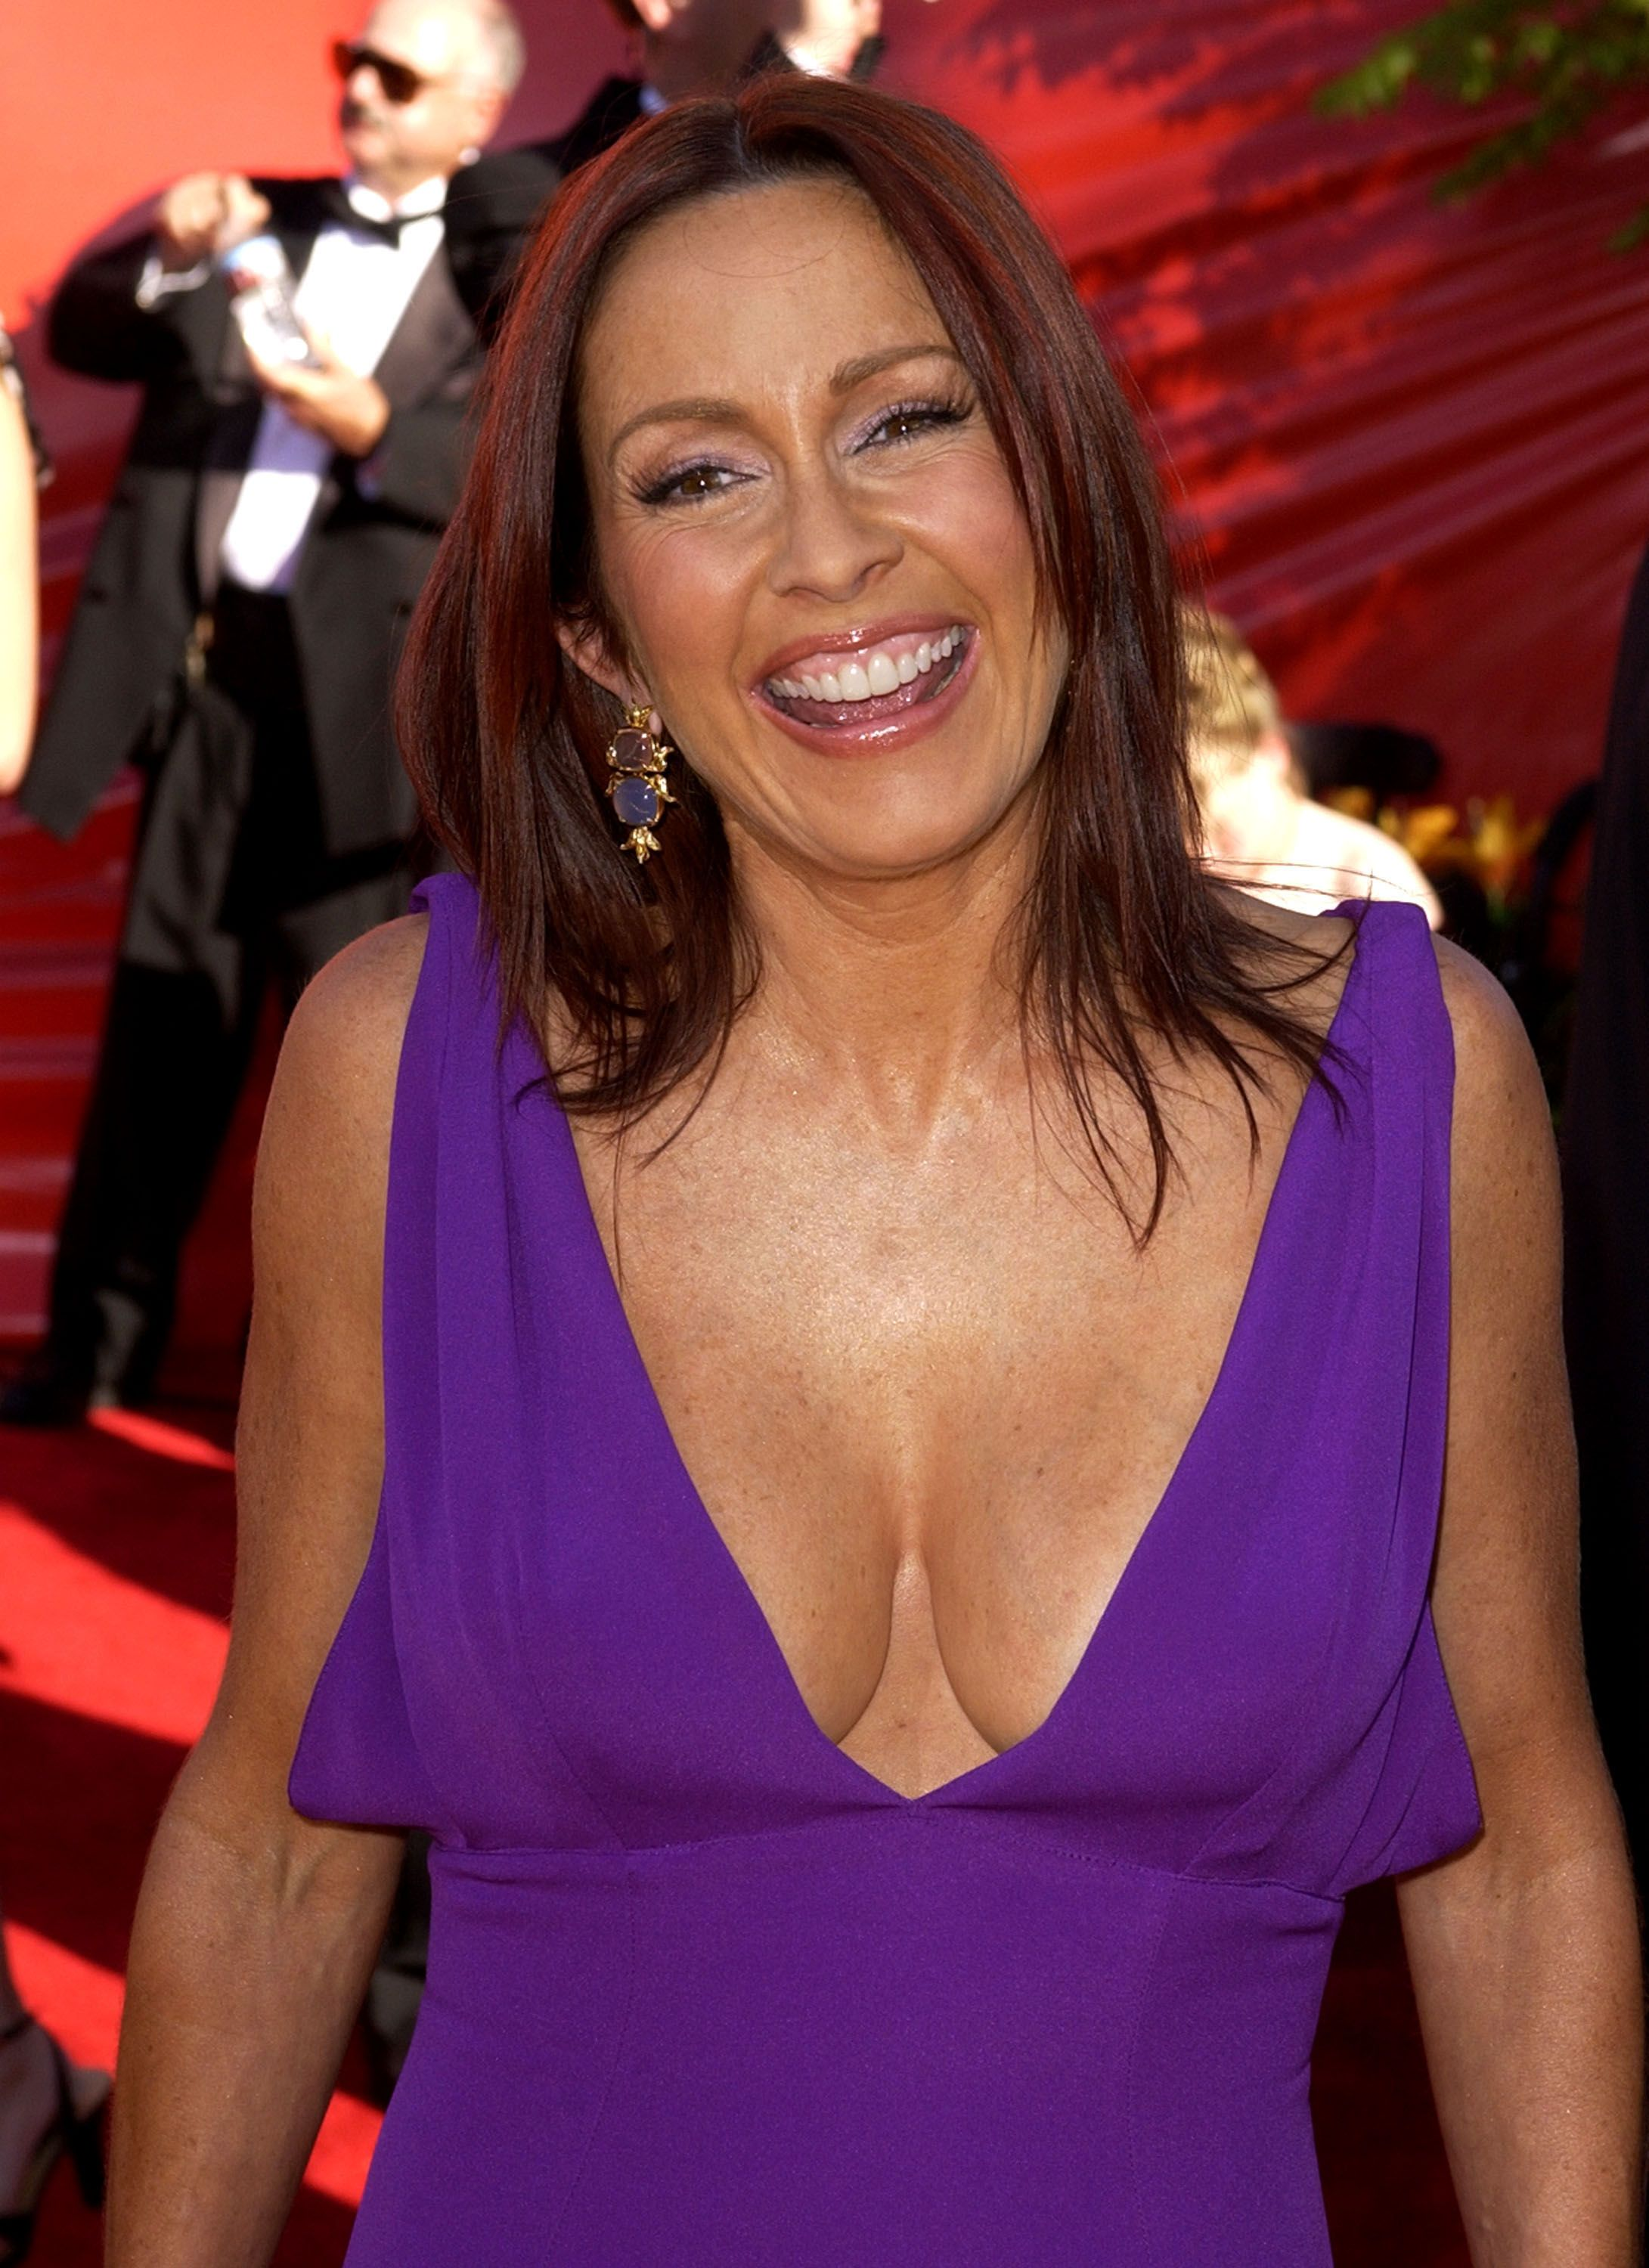 Patricia Heaton born March 4, 1958 (age 60) nude (55 photos), Topless, Leaked, Twitter, underwear 2017